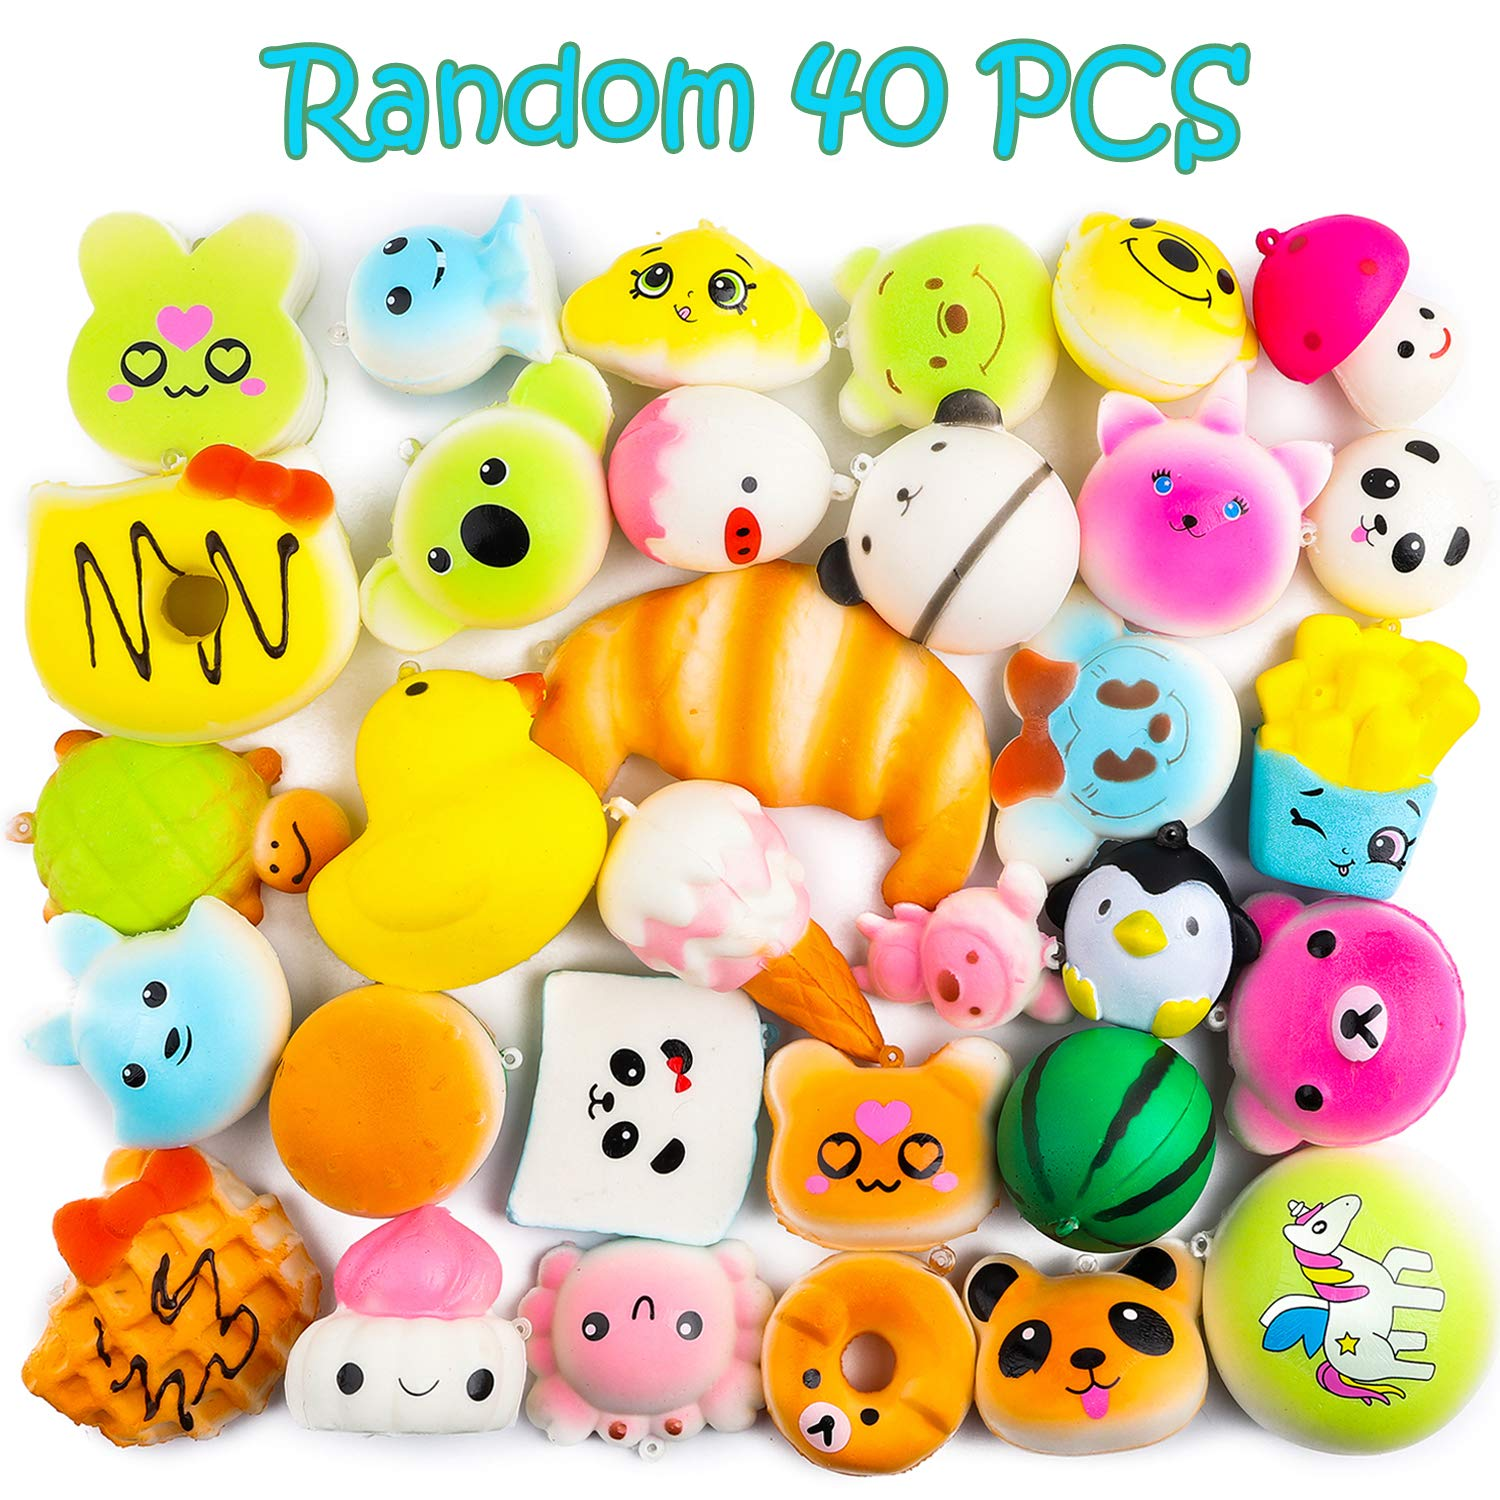 BeYumi Random 42 PCS Mini Squishy Toys 40 Kawaii Food Squishy 2 Animal Squishy Soft Cream Scented Slow Rising Squeeze Toys, Phone Straps for Kids Adults Party Favor by BeYumi (Image #2)